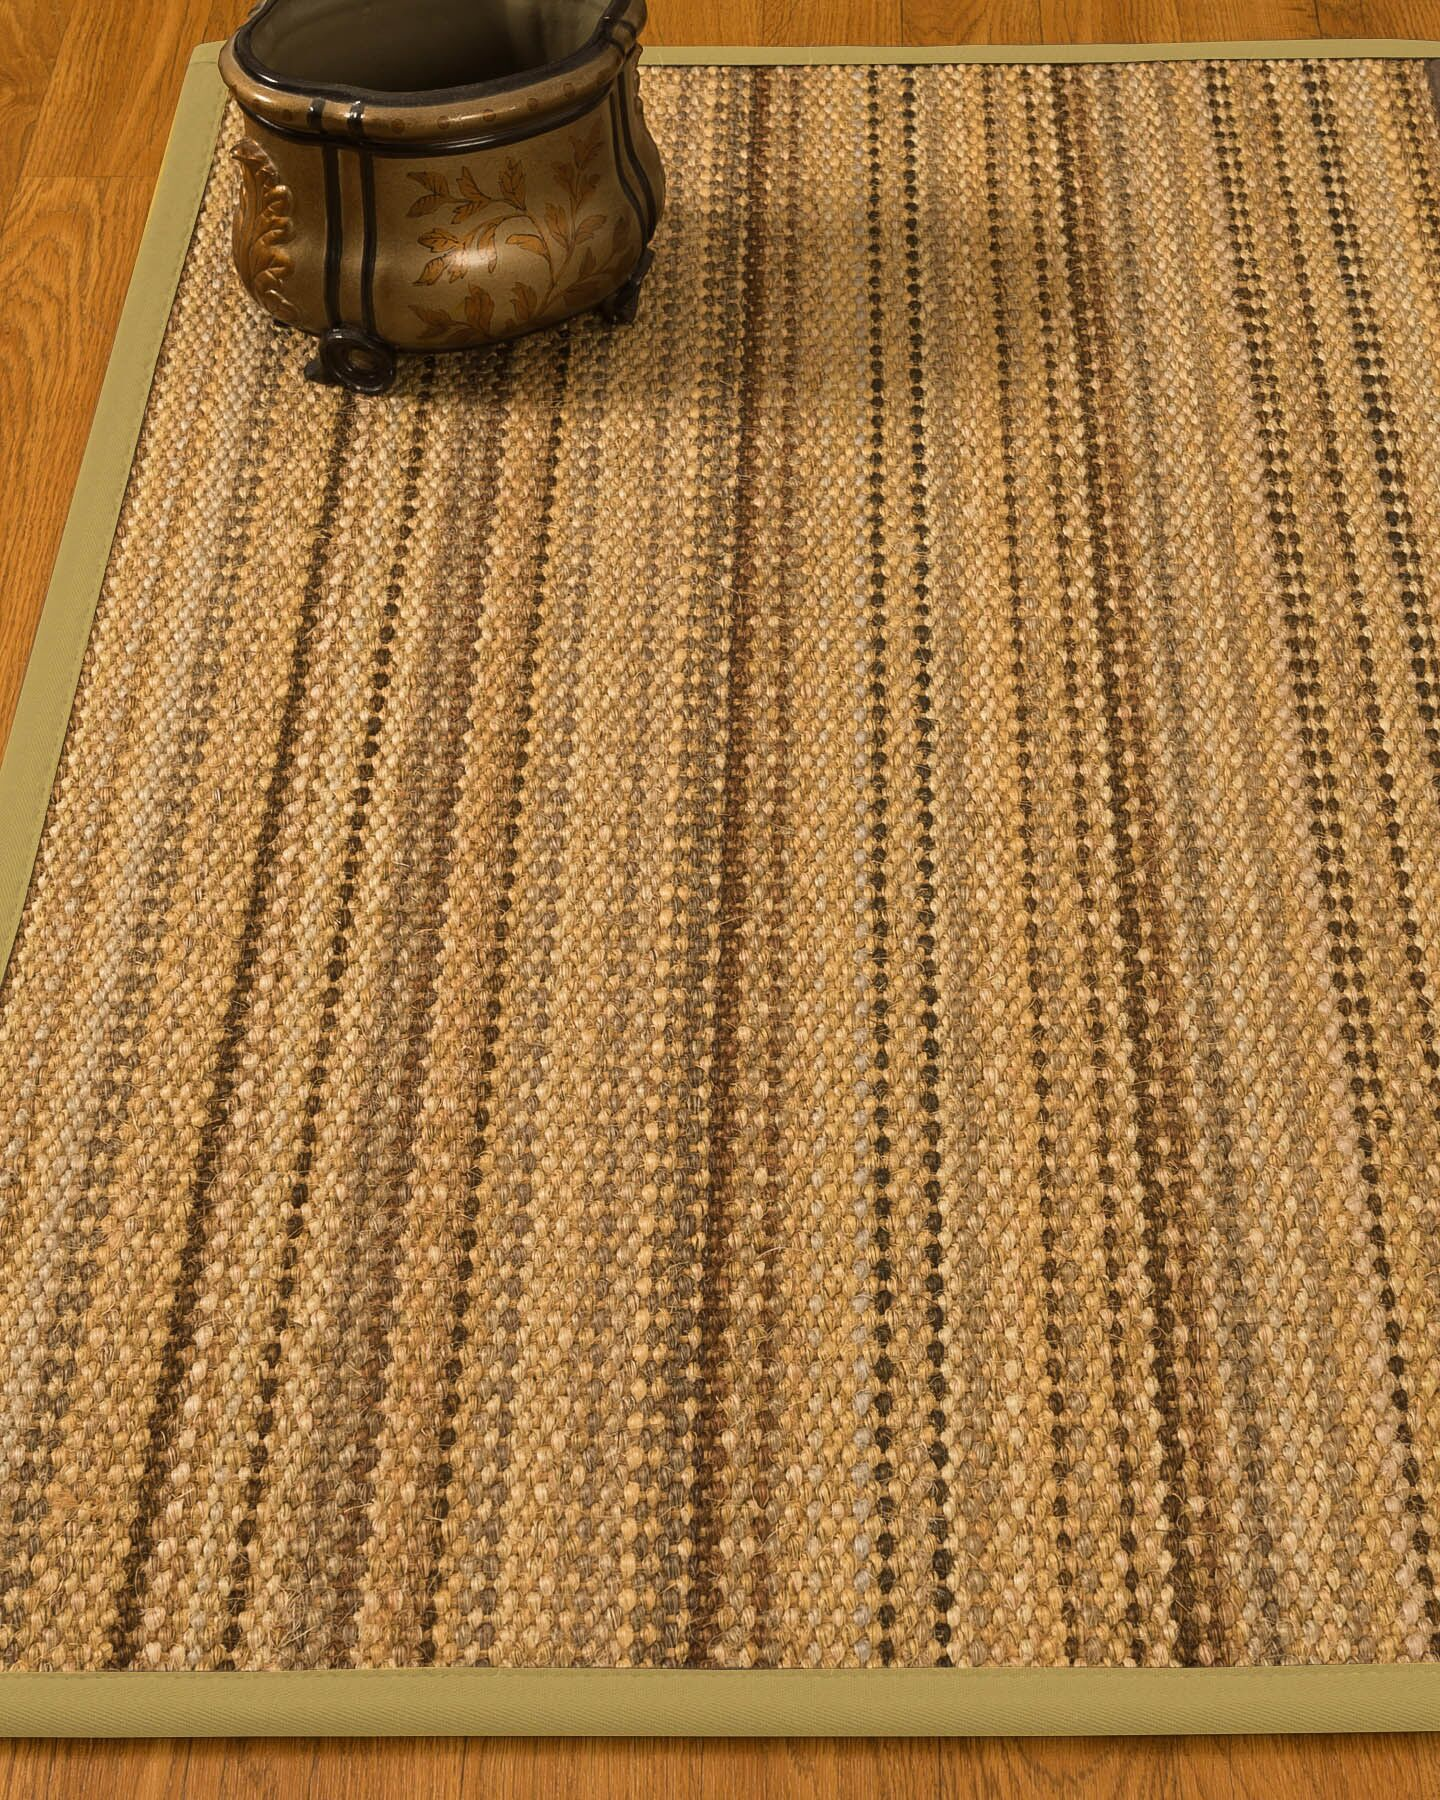 Kimmel Hand-Woven Beige Area Rug Rug Size: Rectangle 9' x 12'